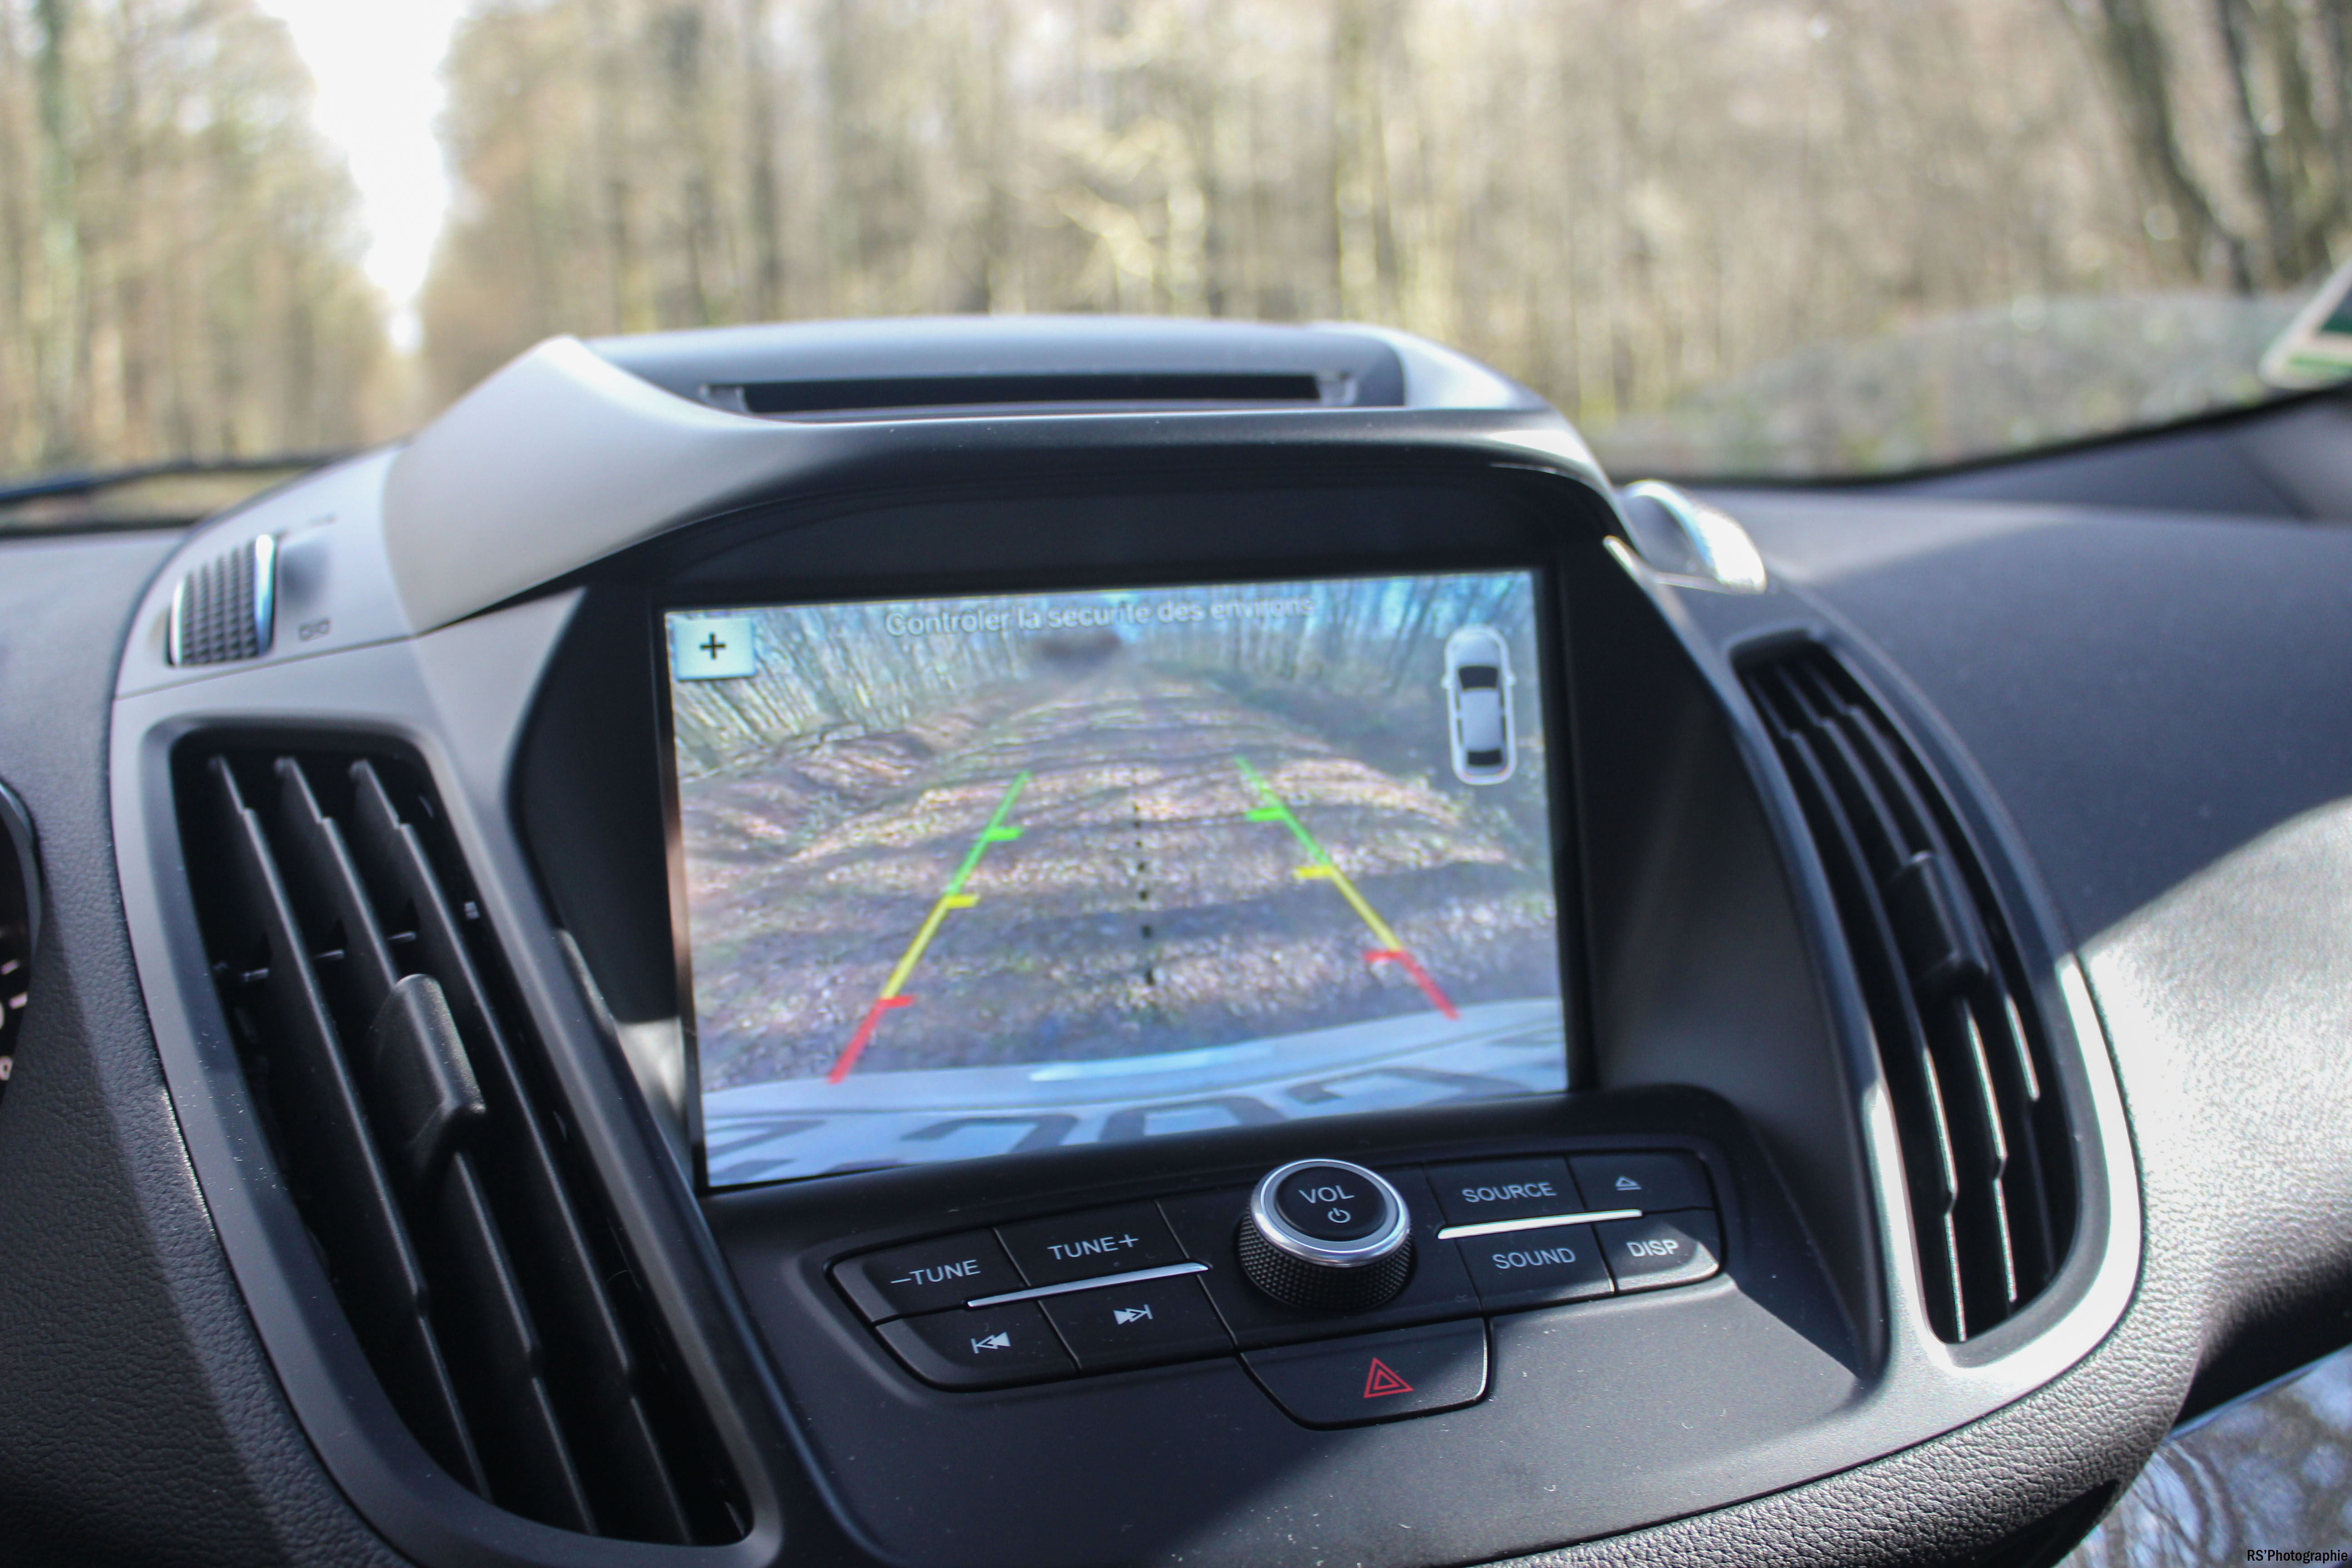 FordKuga17-ford-kuga-150-ecran digital-digital screen-arnaud-demasier-rsphotographie